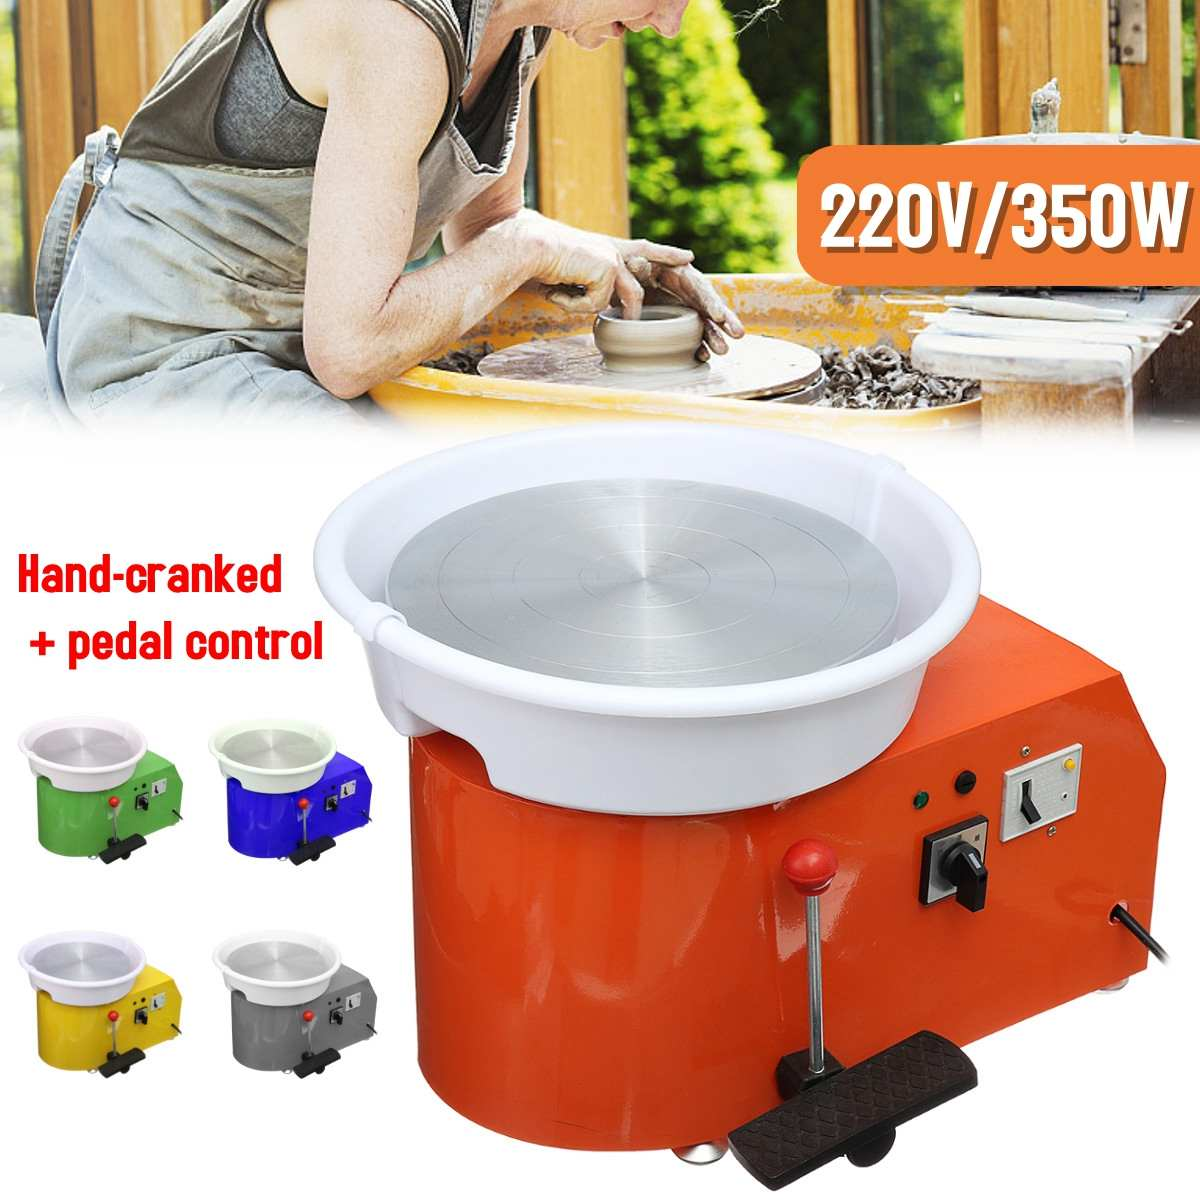 Pottery Wheel Machine 32cm 220V 350W Hand cranked and pedal control Ceramic Work Clay Art With Mobile Smooth Low Noise Pottery Wheel Machine 32cm 220V 350W Hand cranked and pedal control Ceramic Work Clay Art With Mobile Smooth Low Noise